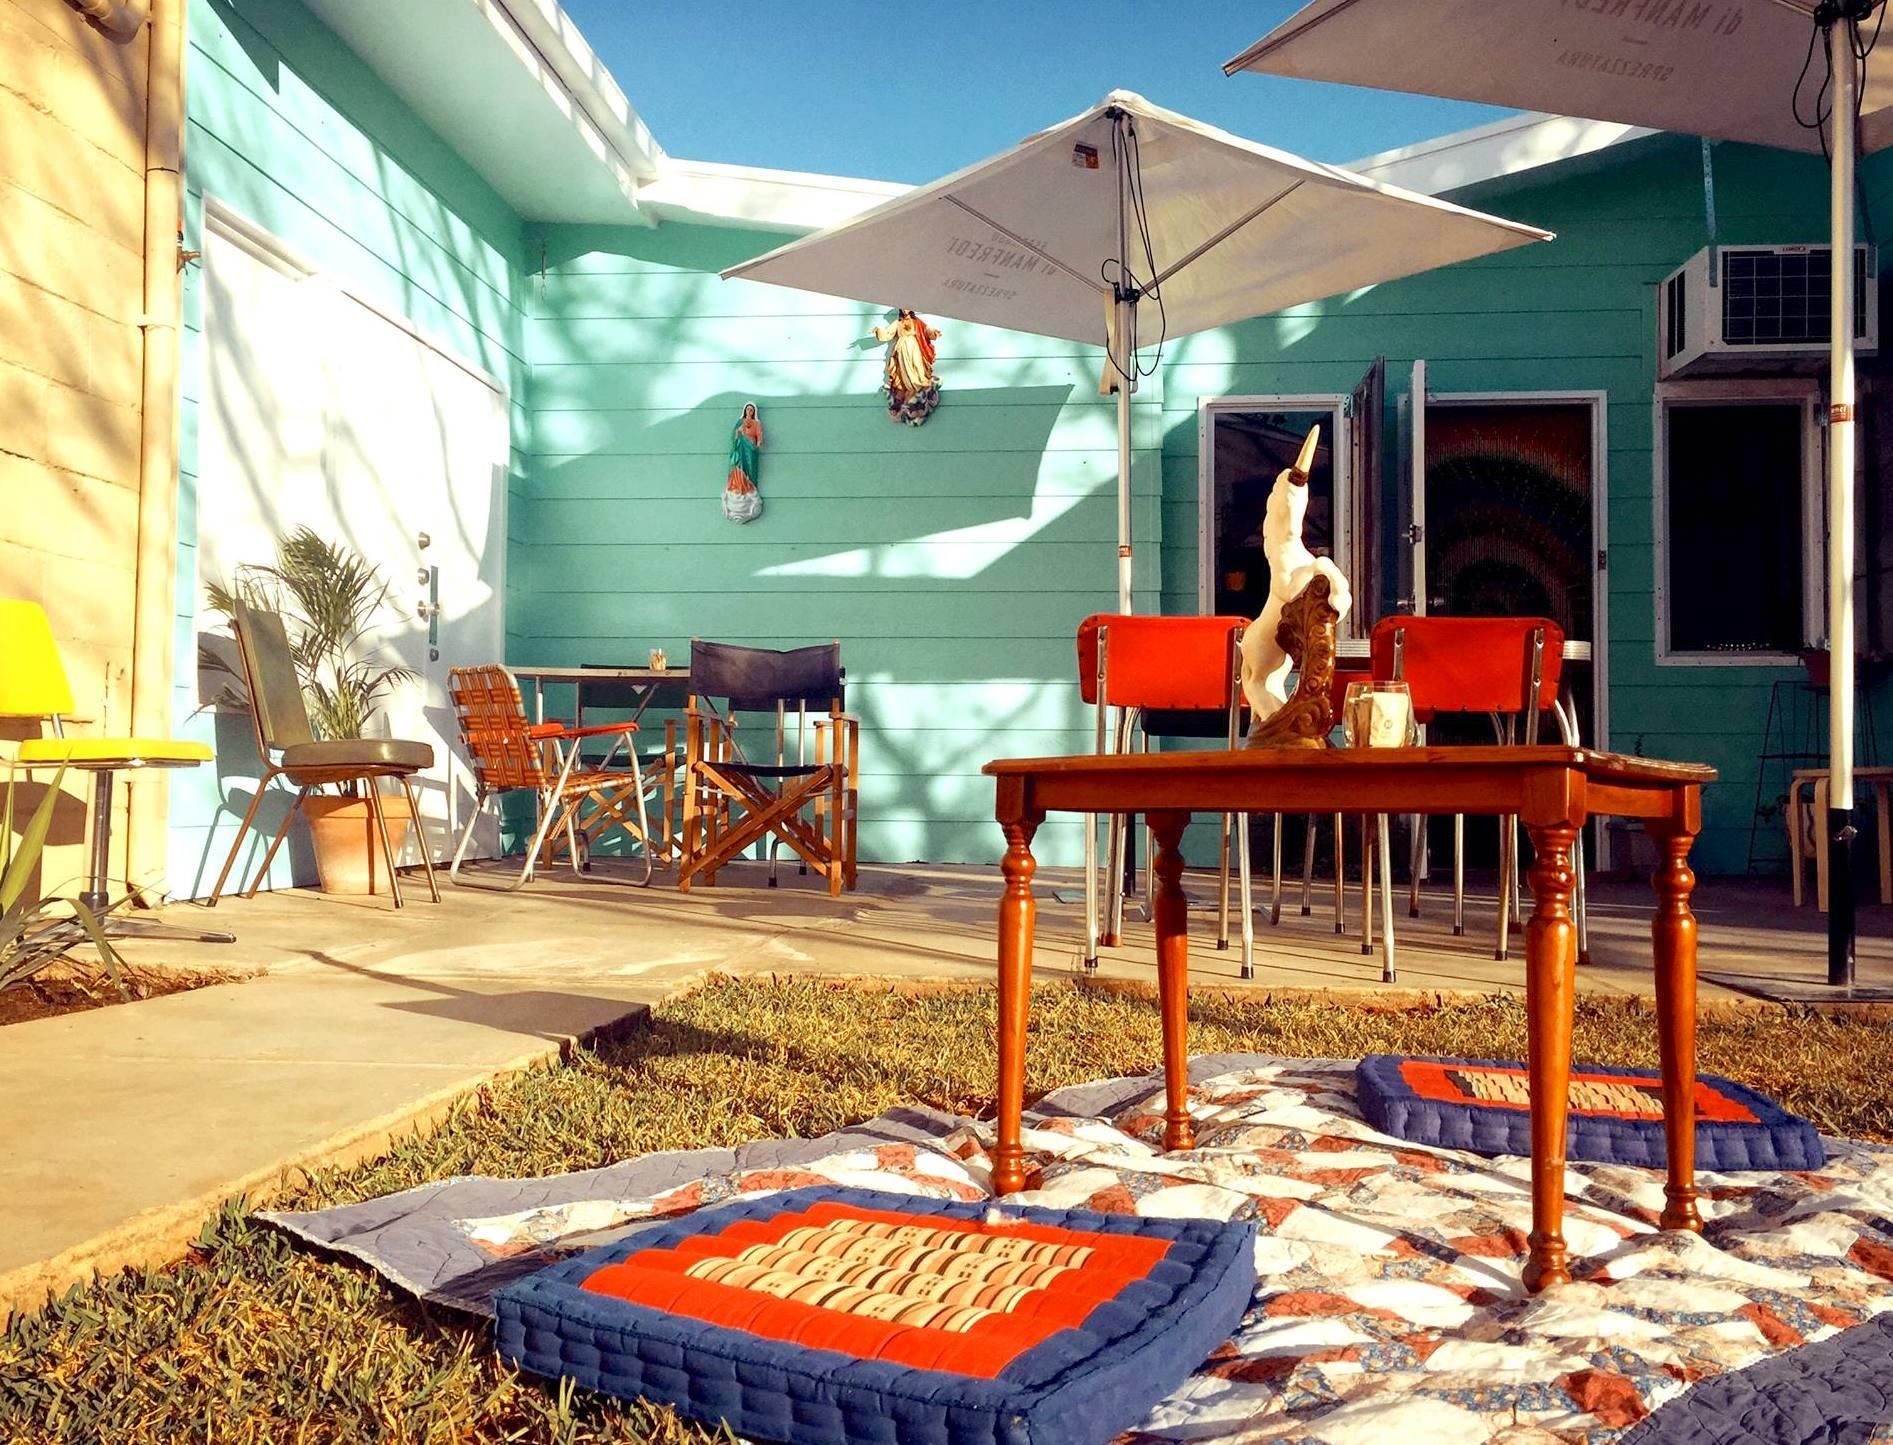 House of Tallulah, Alice Springs